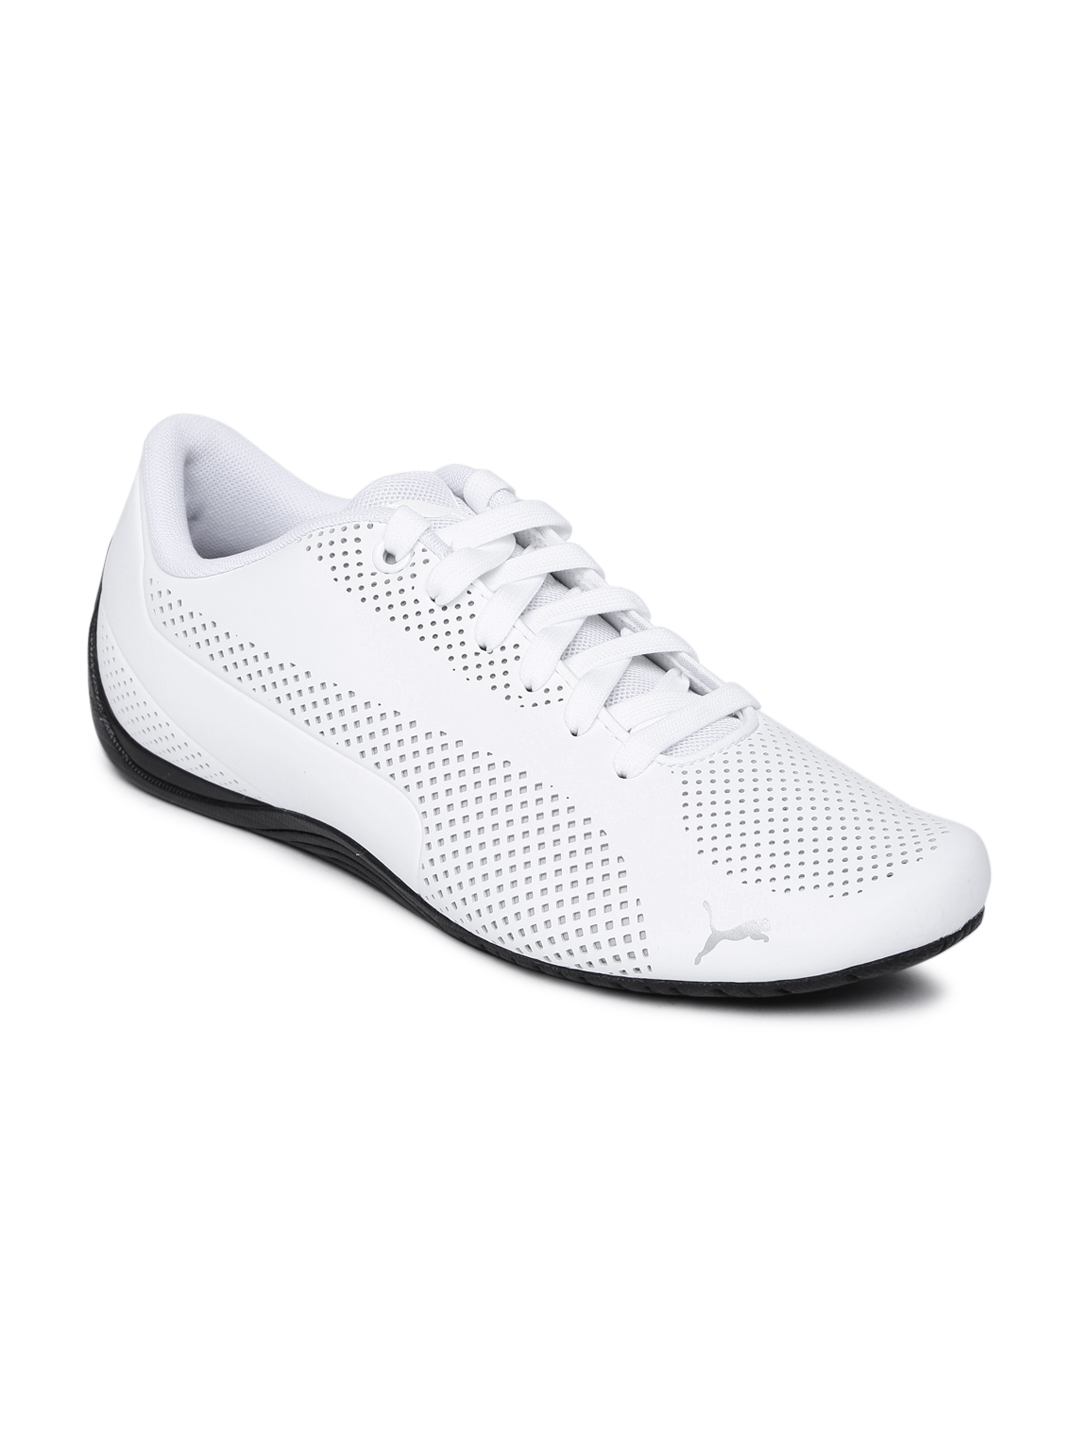 Puma Unisex White Sneakers Price in India